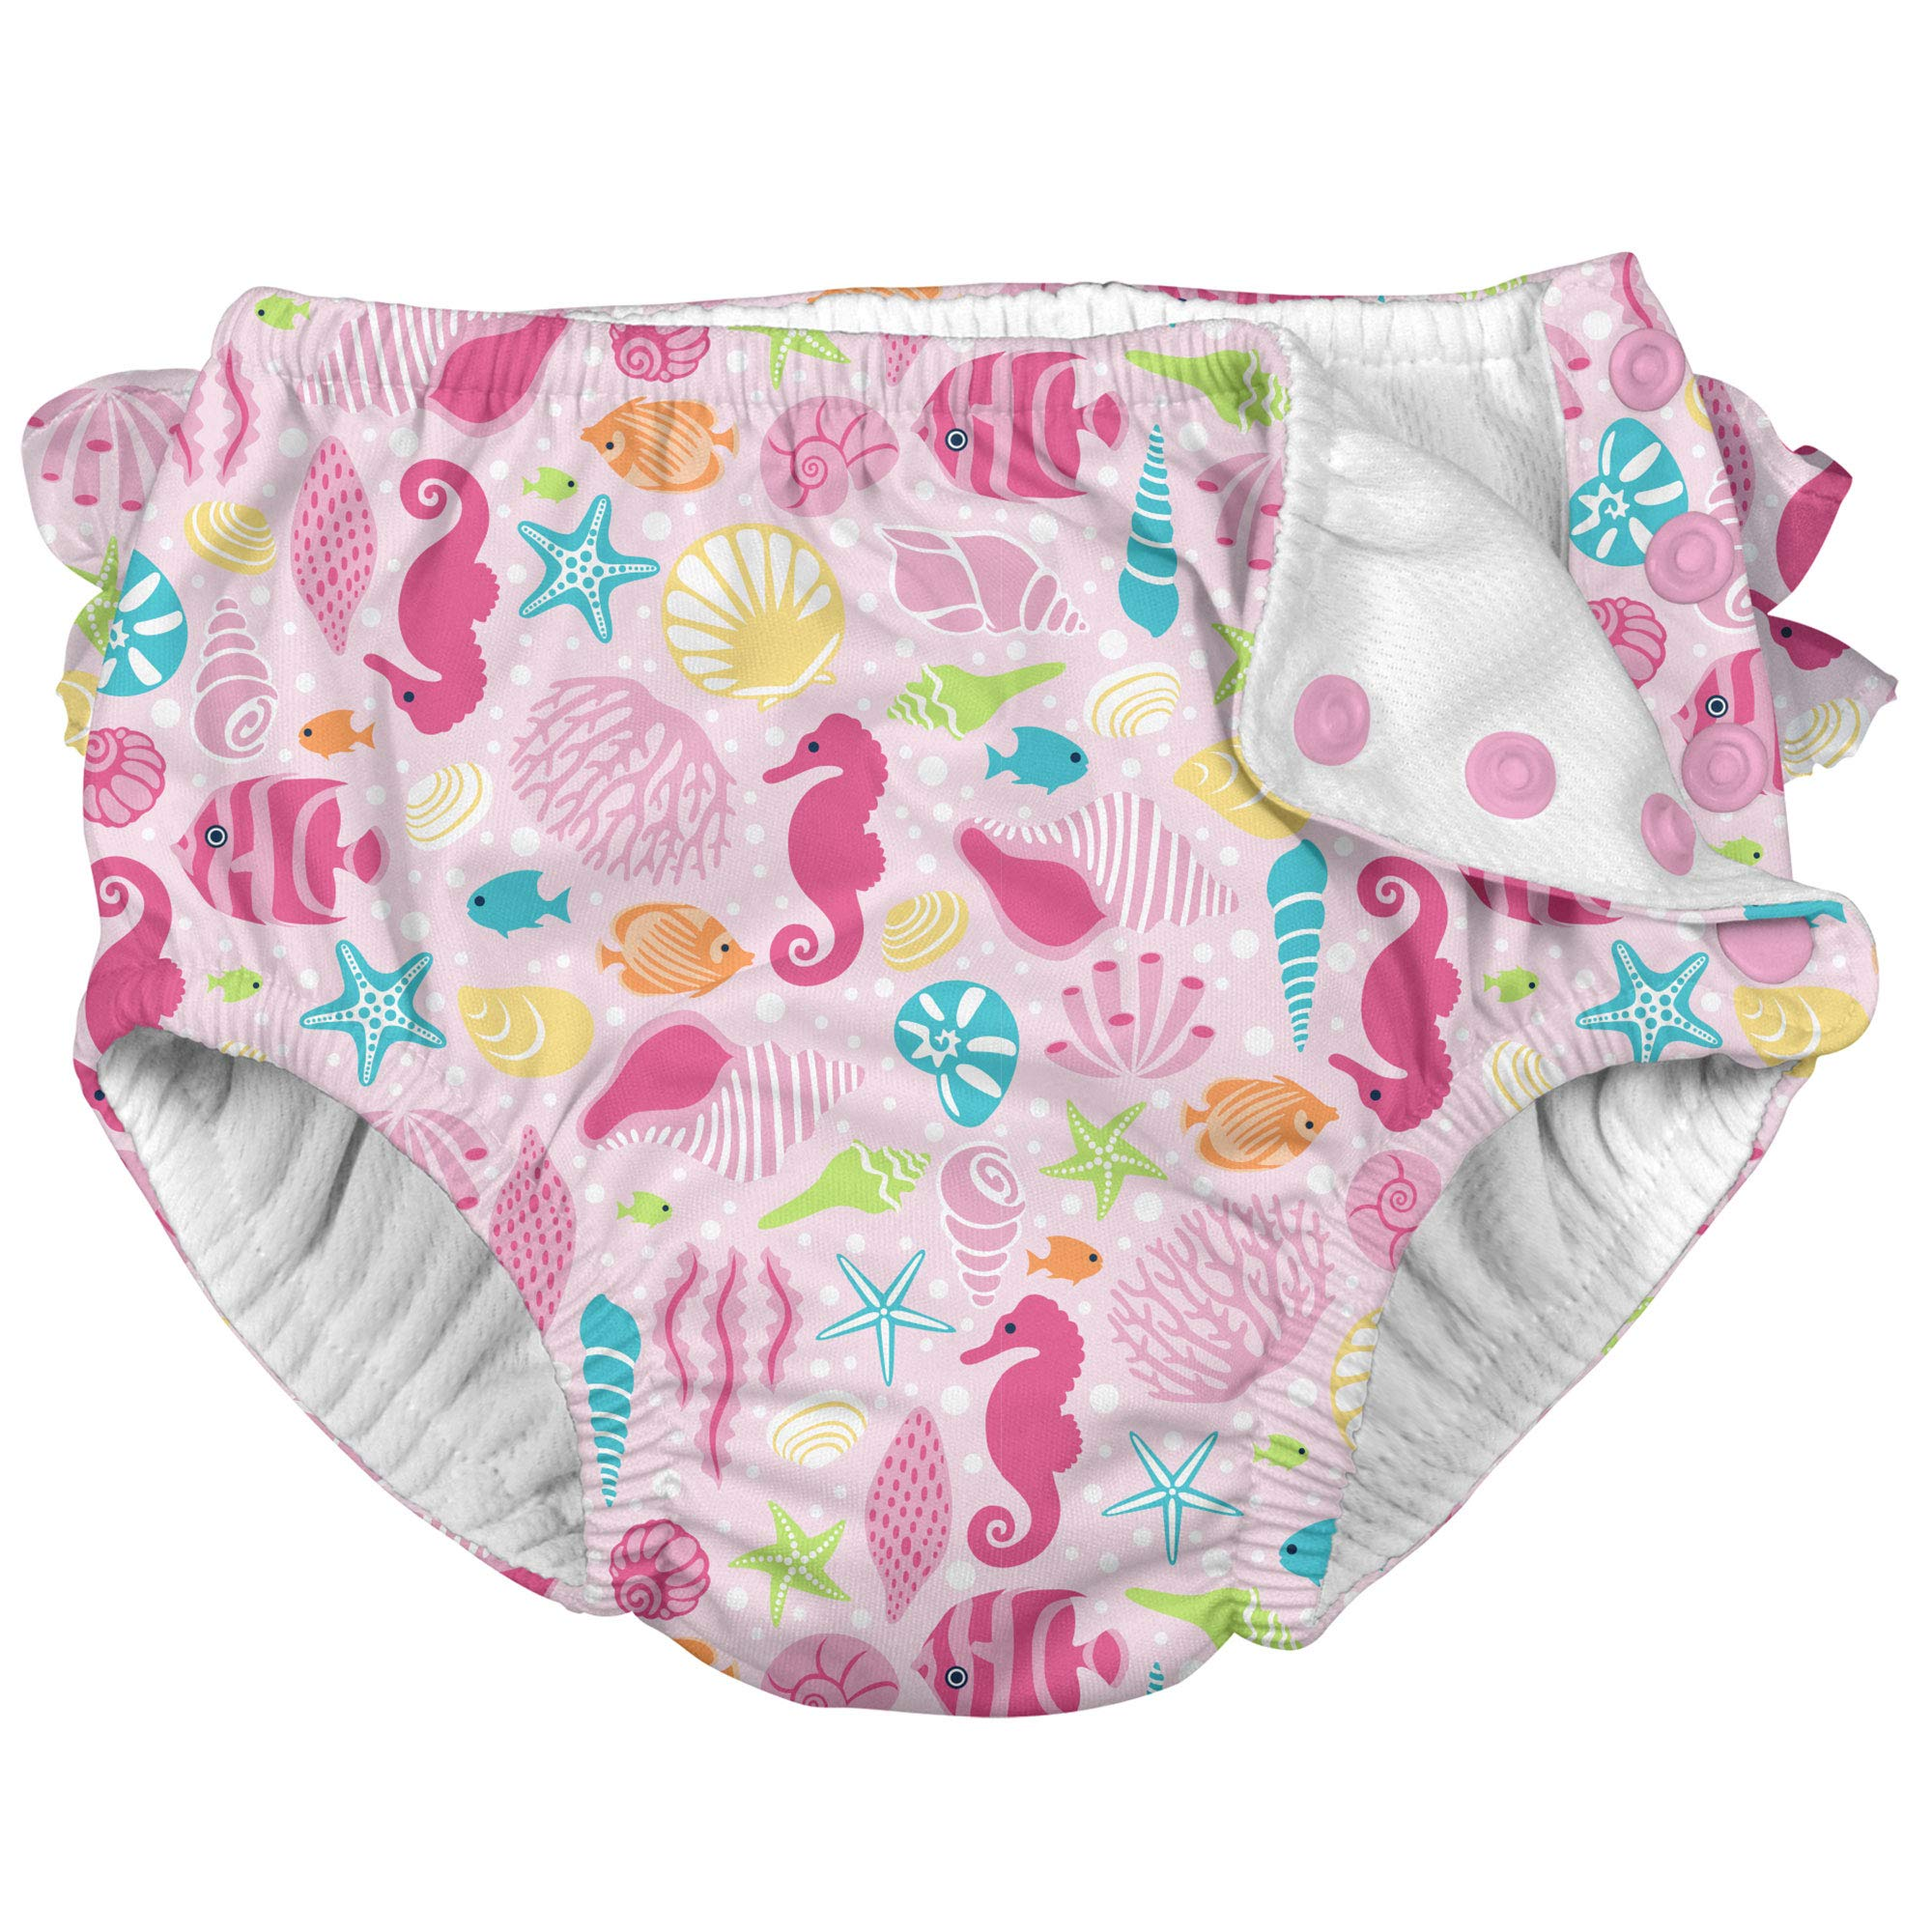 i Play Girls Reusable Absorbent Toddler Swim Diapers - Swimming Suit Bottom | No Other Diaper Necessary Pink Sea Life 3T